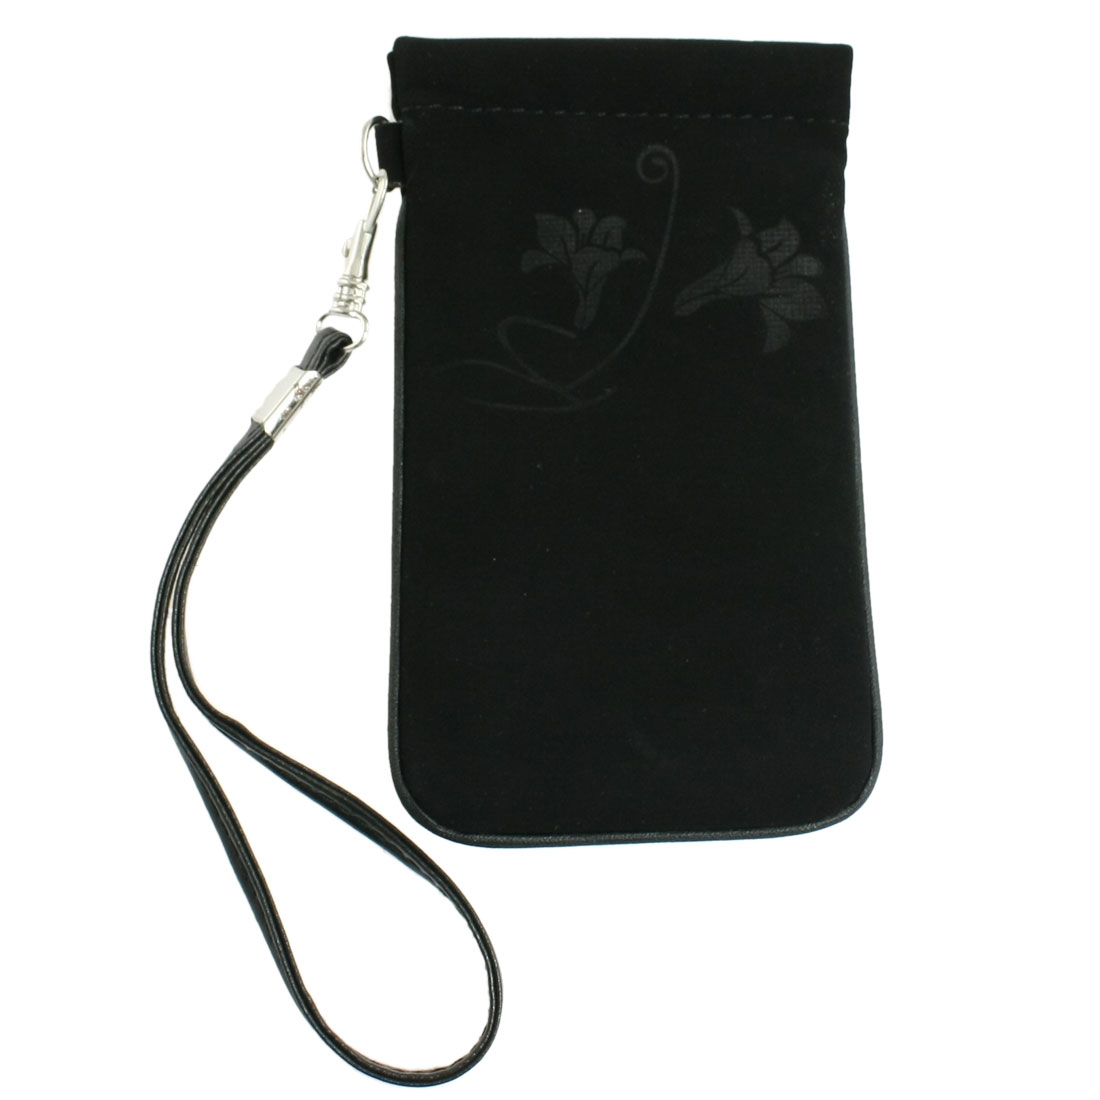 Black Edge Flowers Pattern Bag w Wrist Strap for Mobile Phone